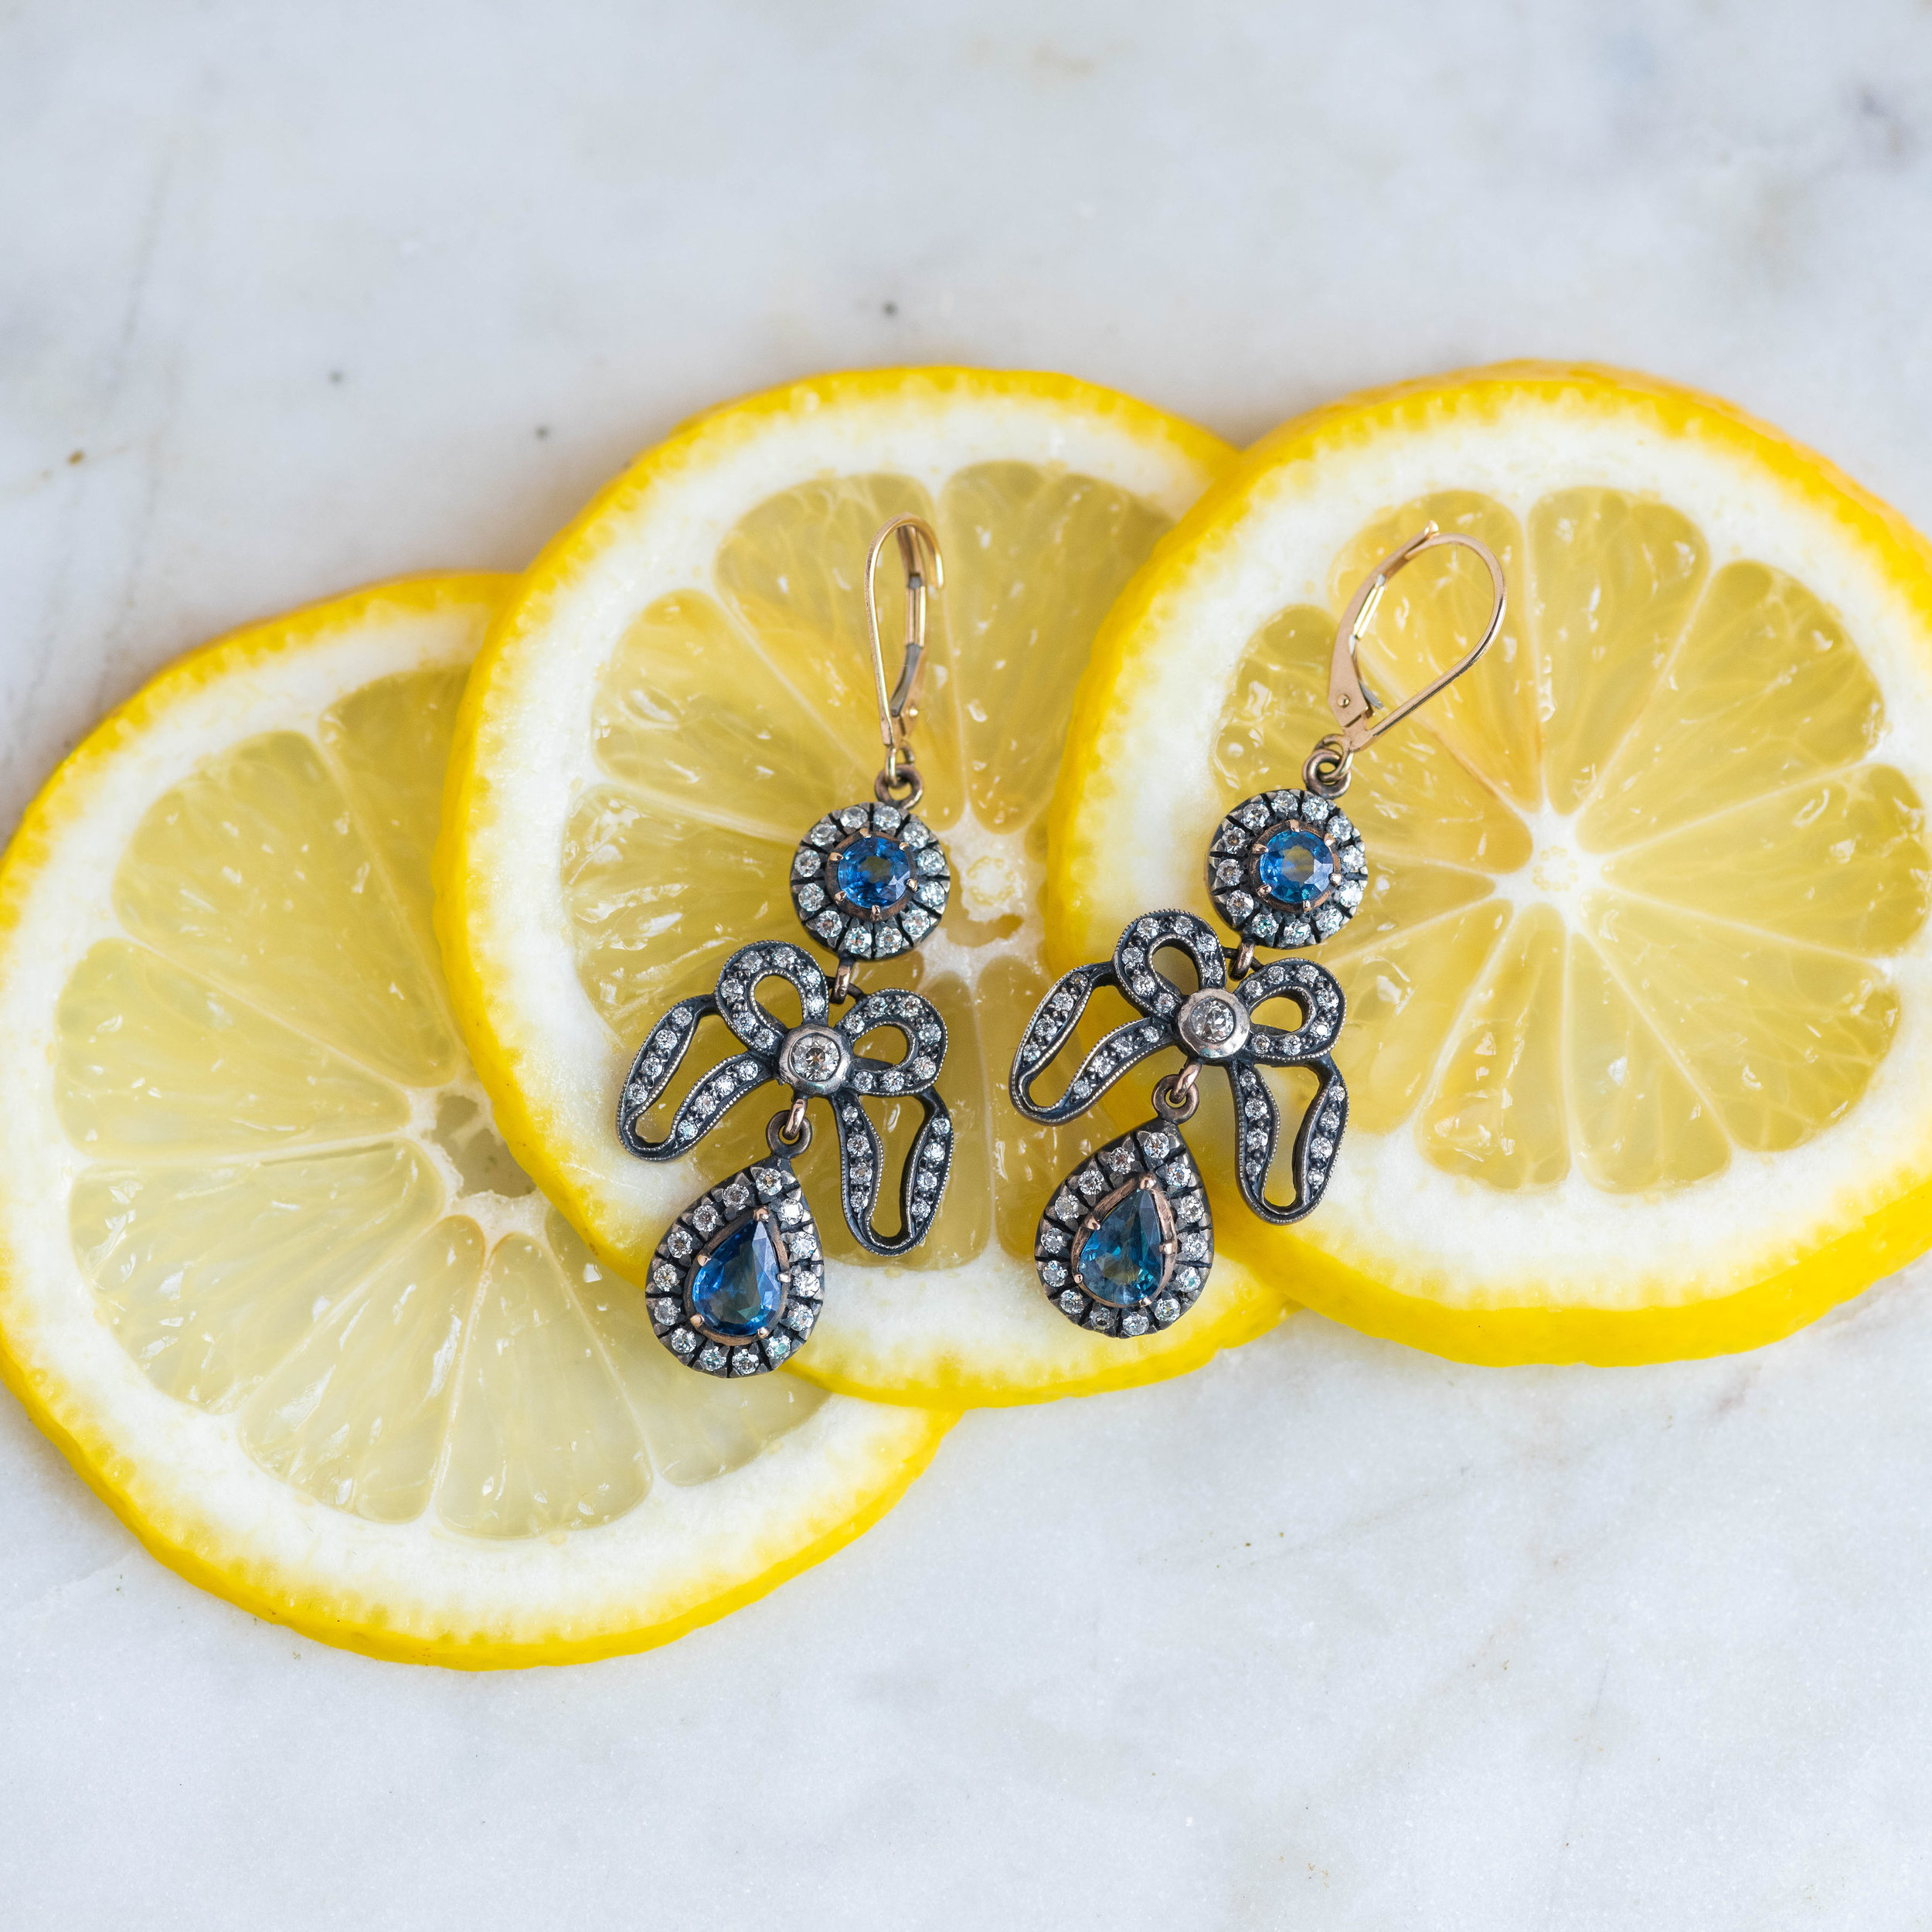 When life gives you lemons, grab your wallet and buy yourself these sapphire and diamond earrings 🍋 SHOP  HERE!